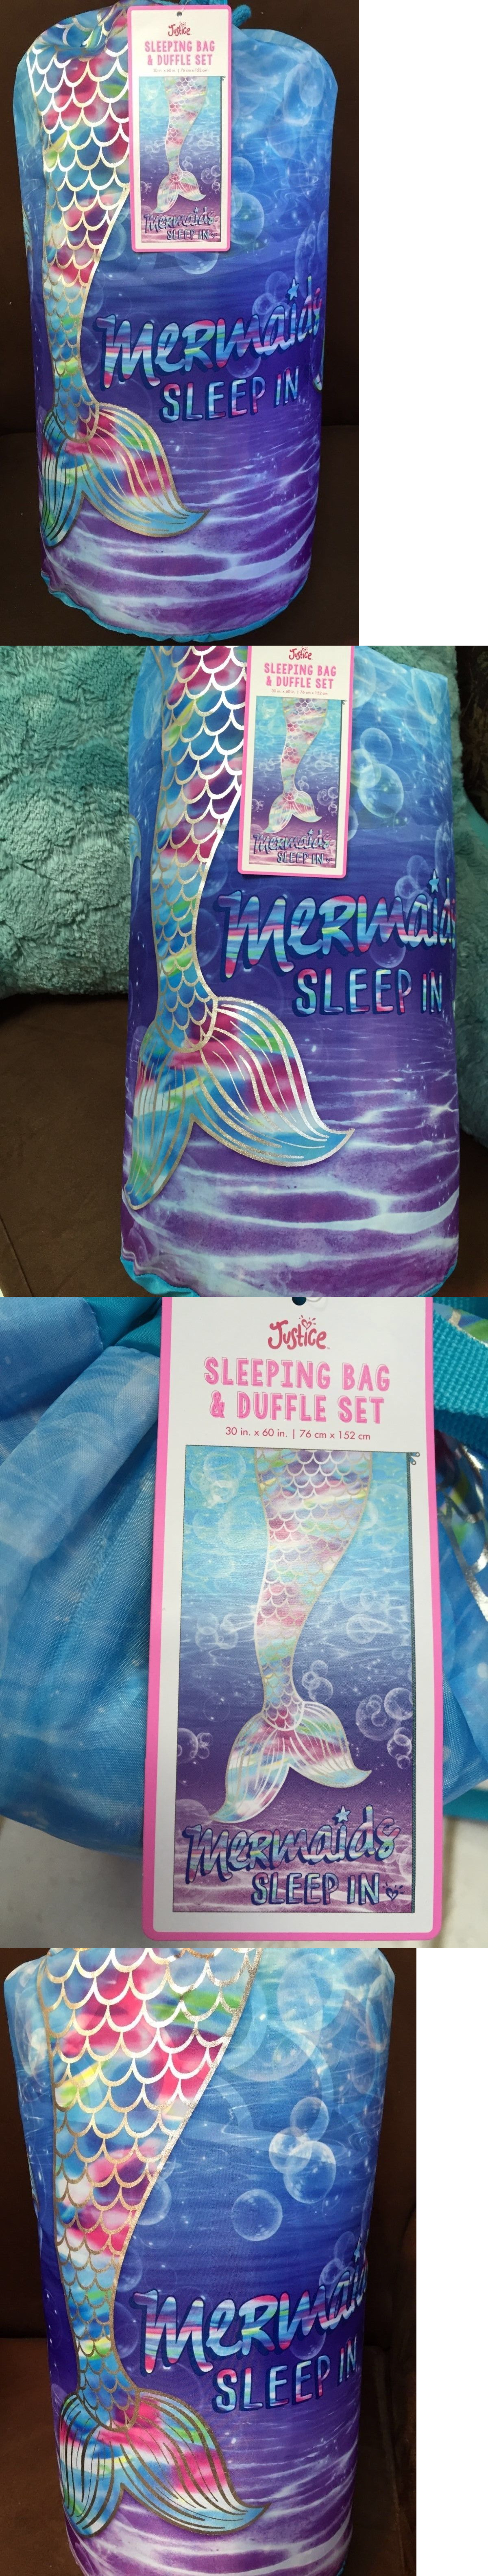 867367e862 Backpacks 57917  Justice Mermaid Sleeping Bag And Duffle Bag Brightly  Colored Super Cute!! -  BUY IT NOW ONLY   49.99 on eBay!